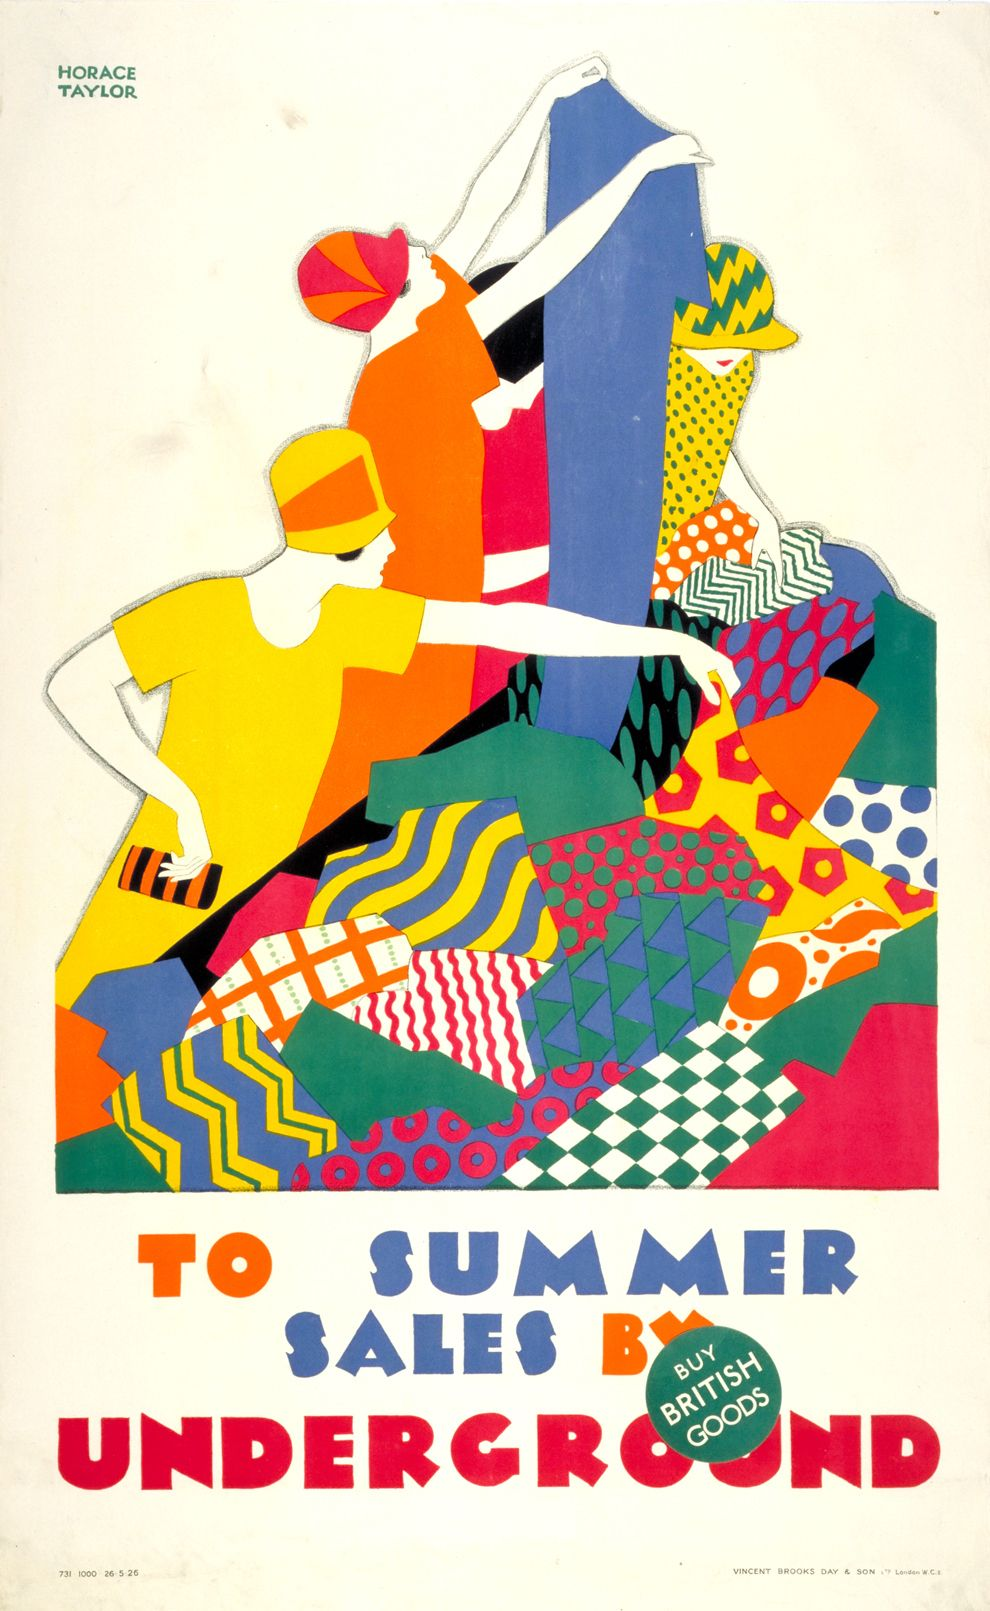 1929 Cheap Fares Retro Travel Poster Vintage Posters Transportation Poster